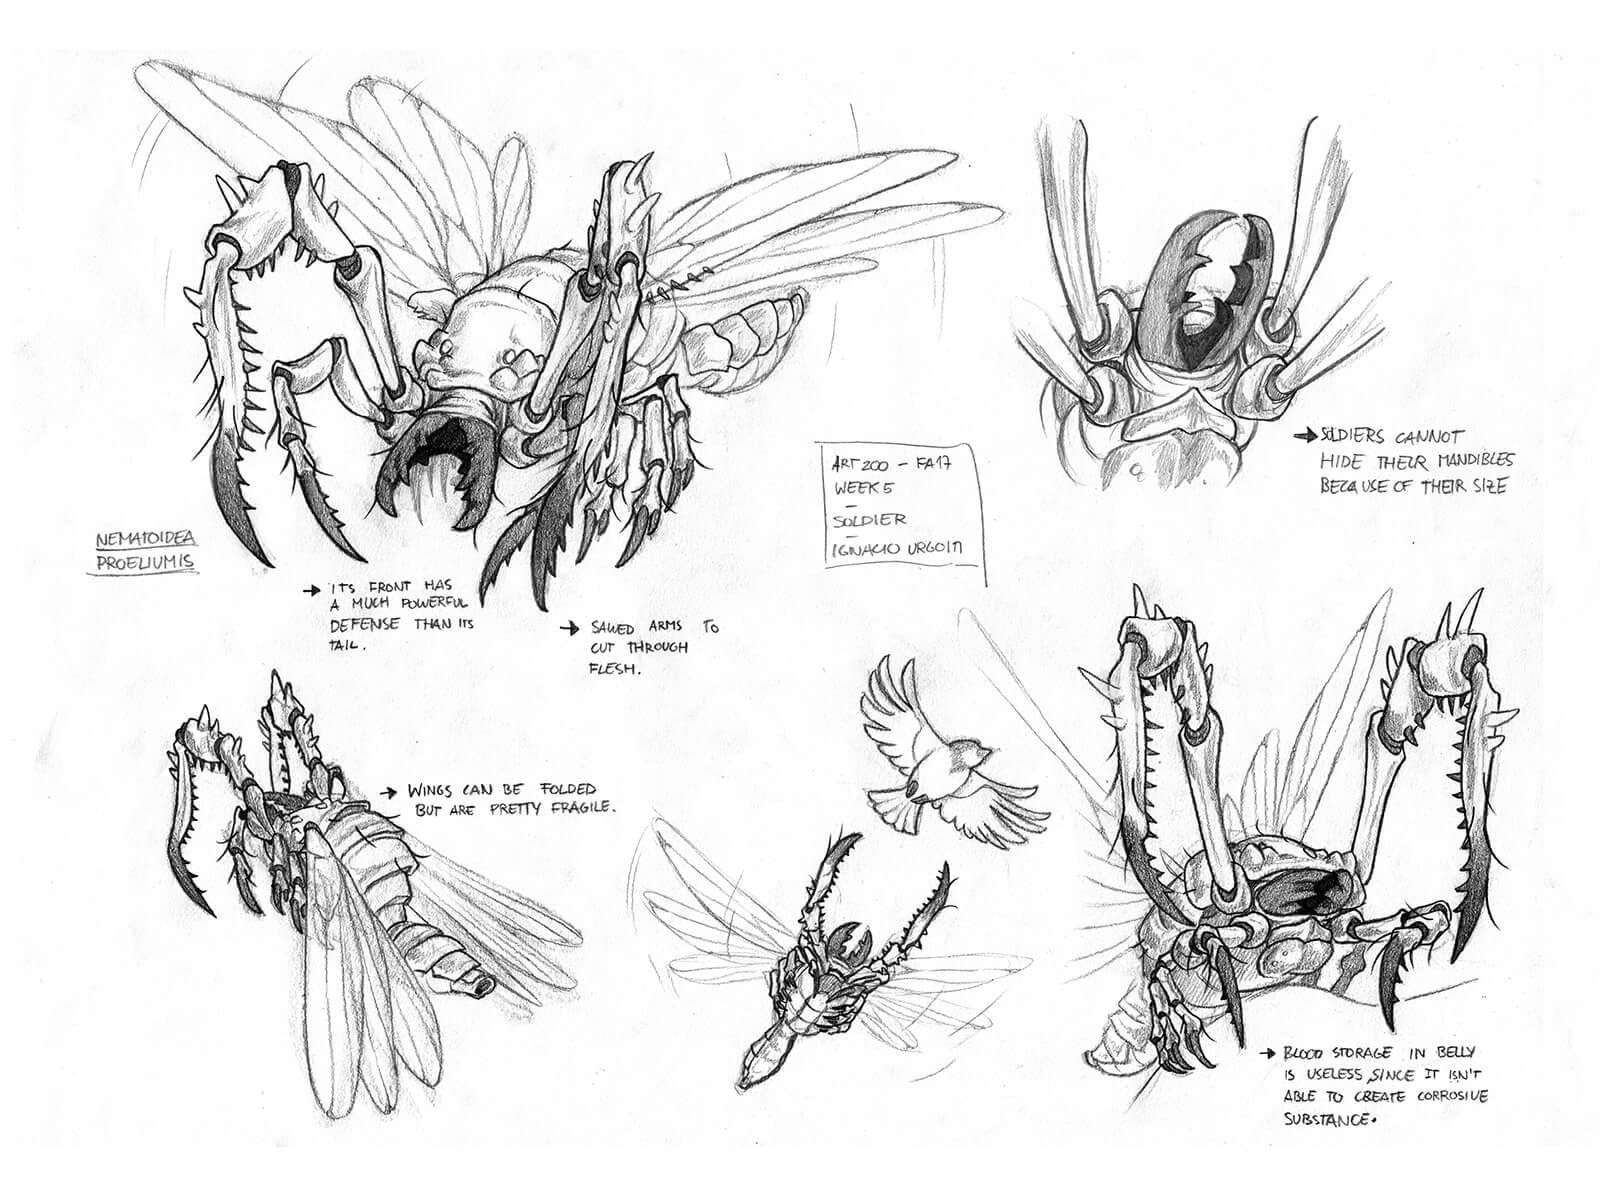 Black-and-white sketches of a fantastical flying insectoid with large pinching jaws, including its life cycle and prey.